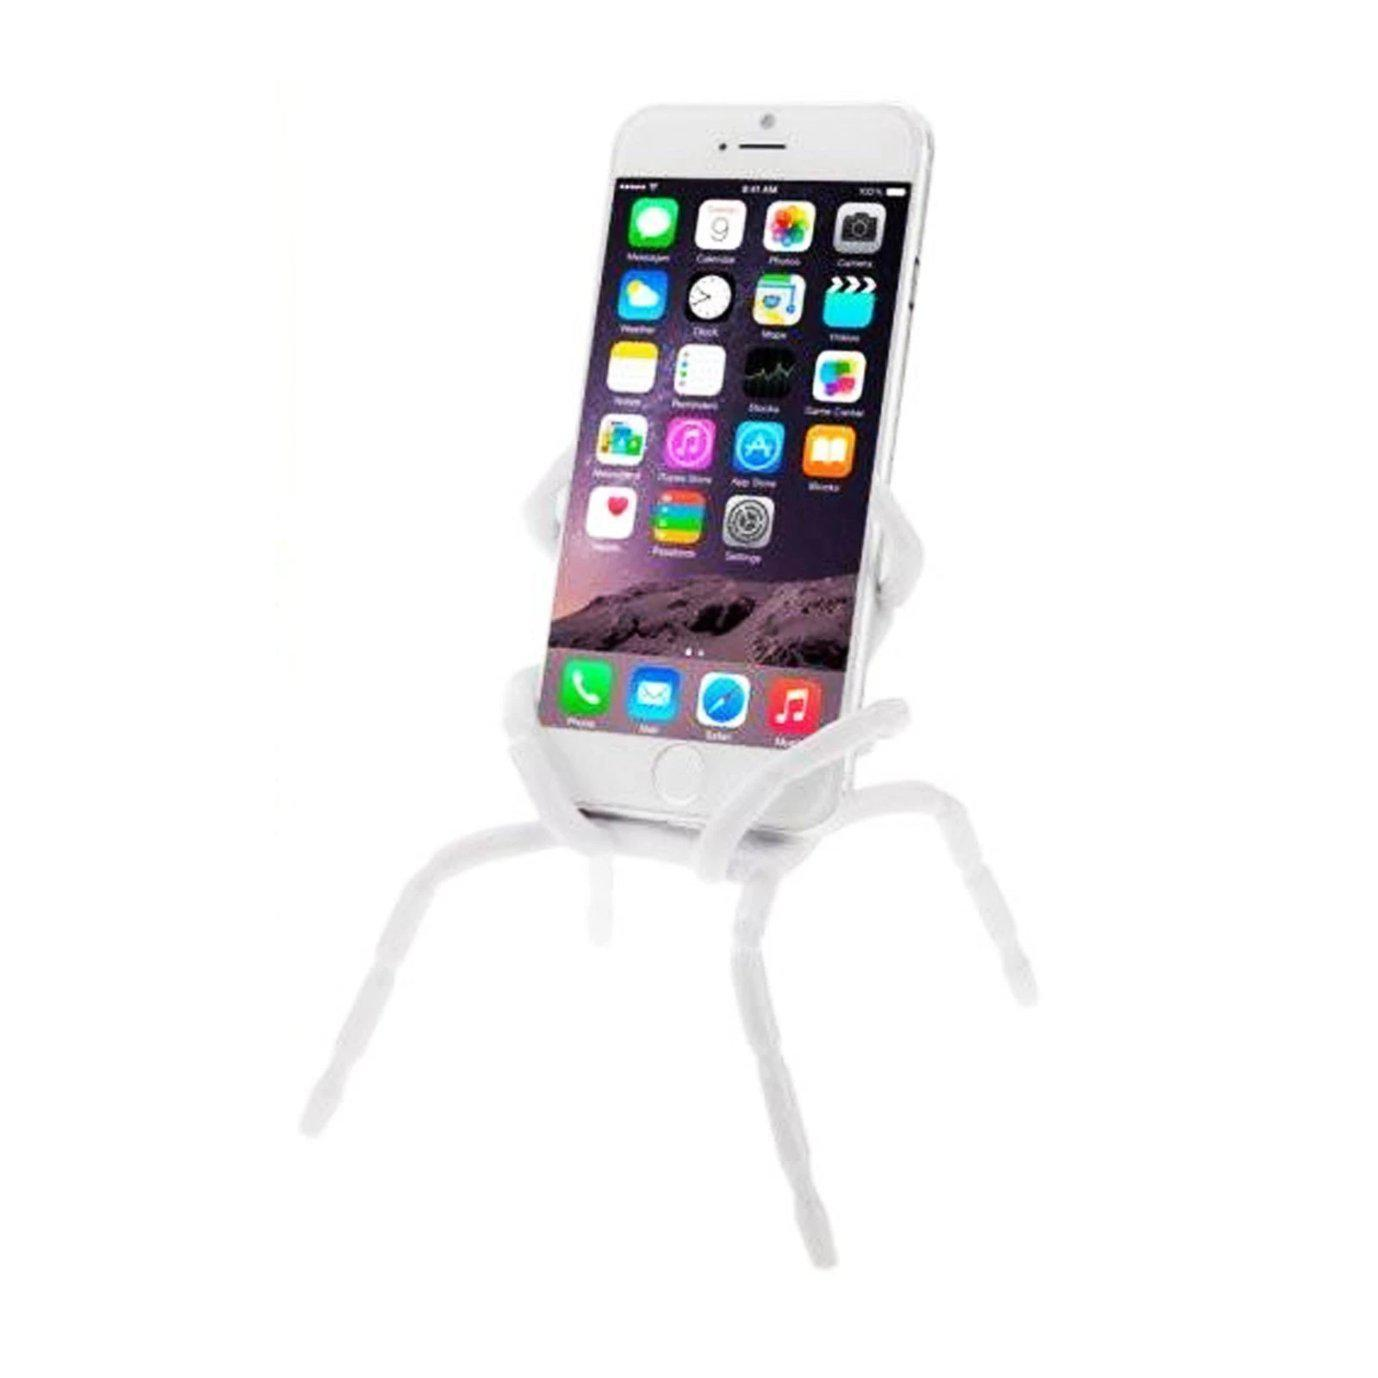 bluelounge mobile micro for in gps stand mount ipad holder quality desk iphone samsung suction galaxy holders stands high item phone design